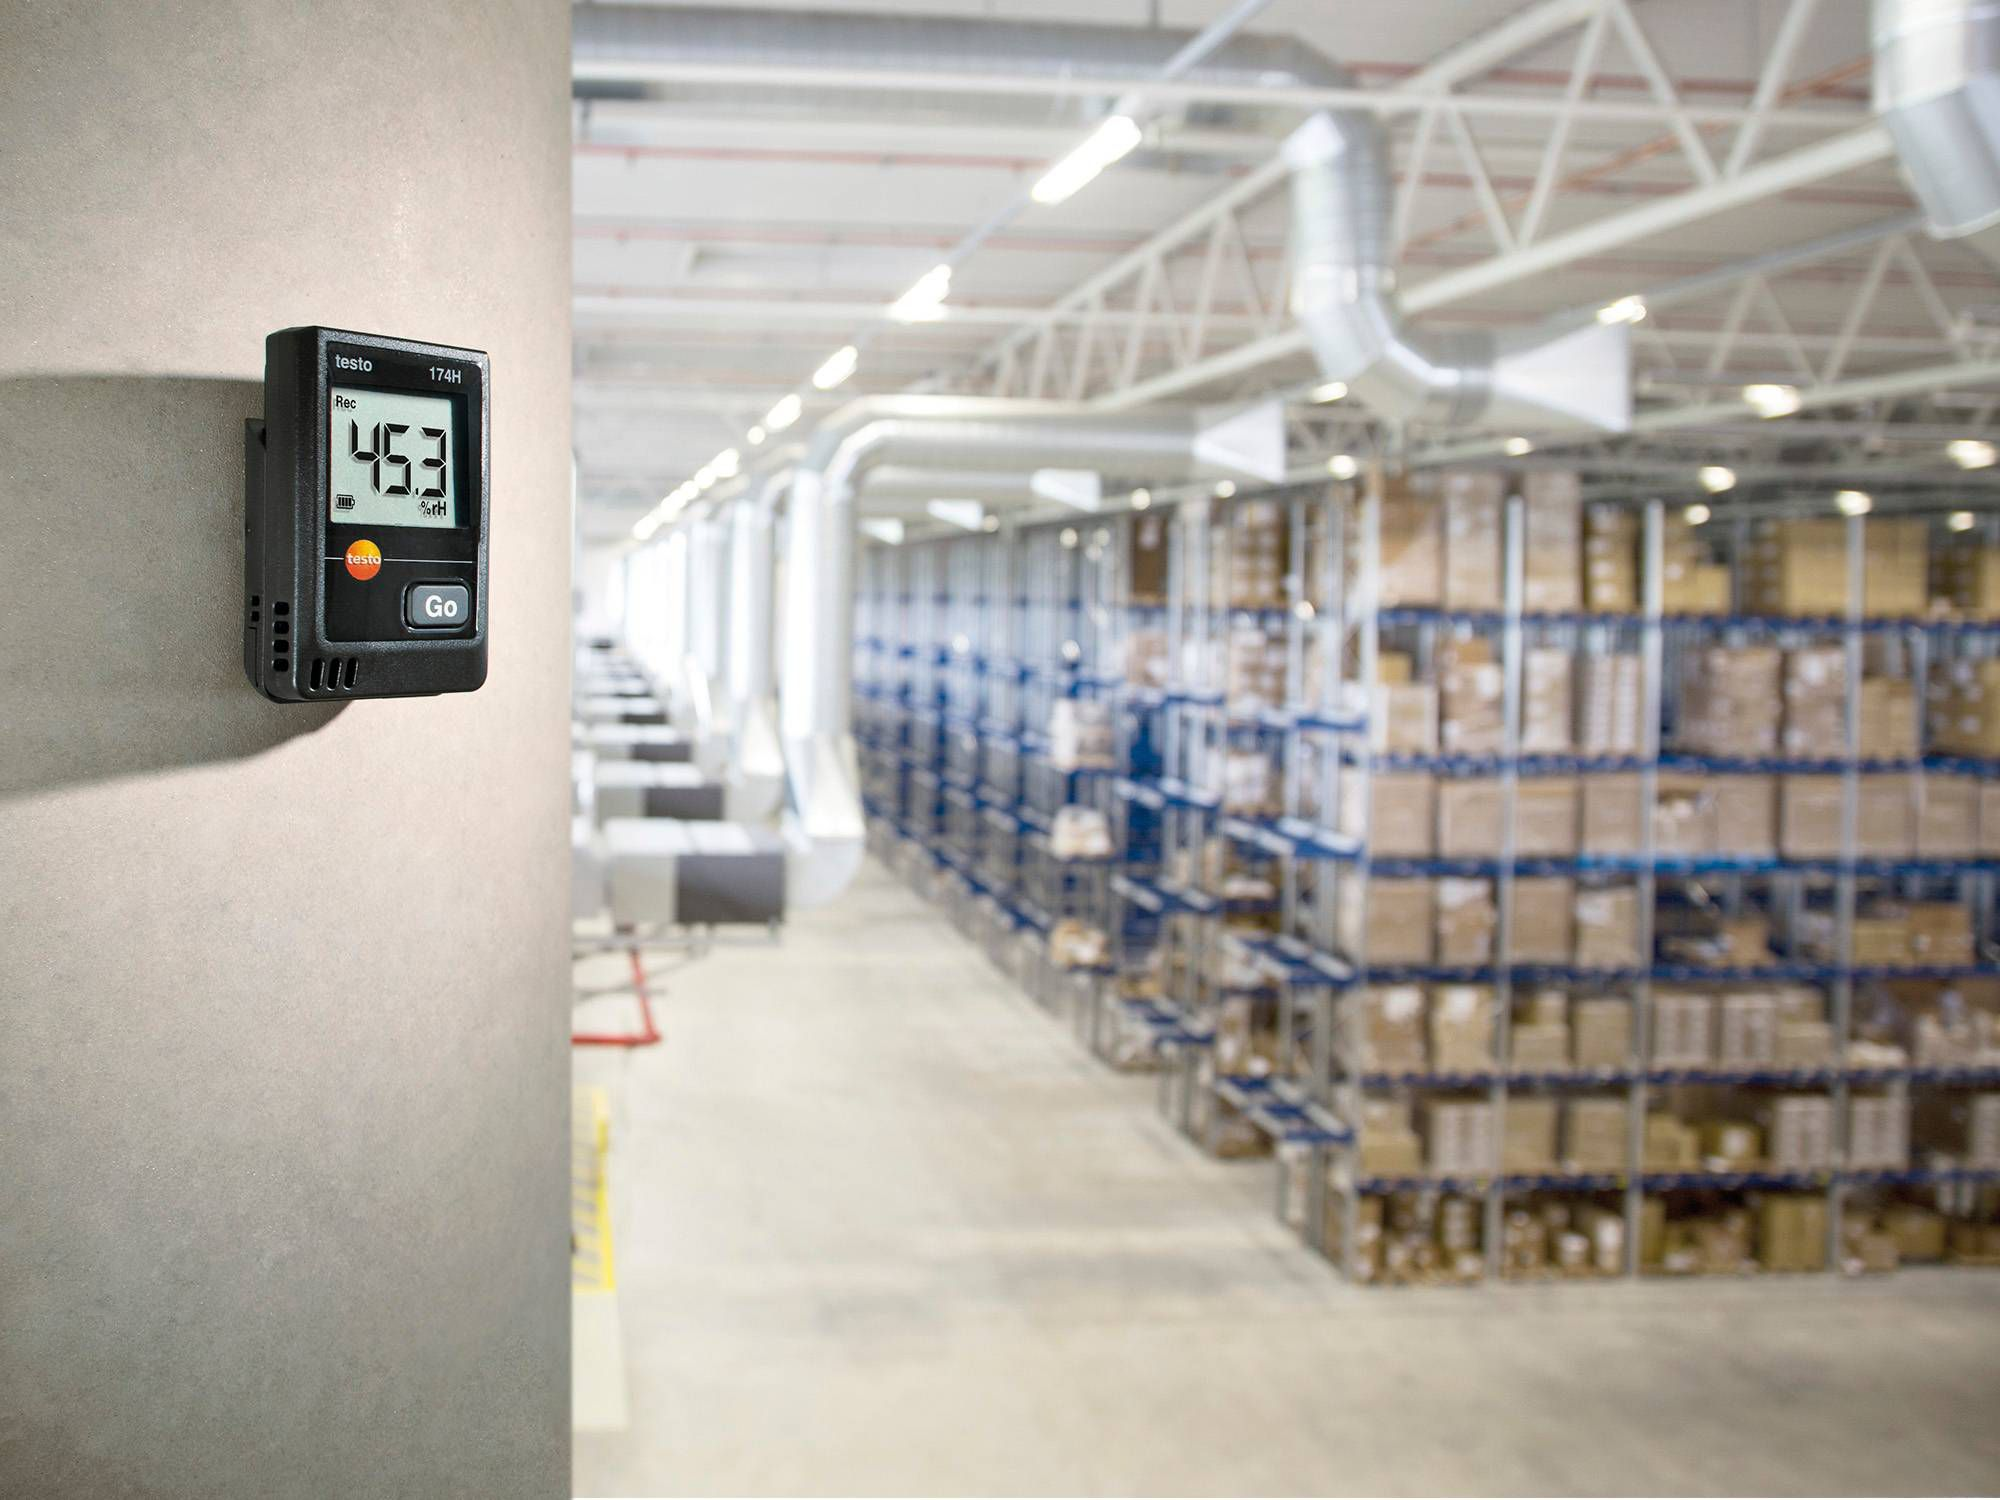 The testo 174 H mini data logger monitors temperature and humidity in a storage room containing pharmaceuticals